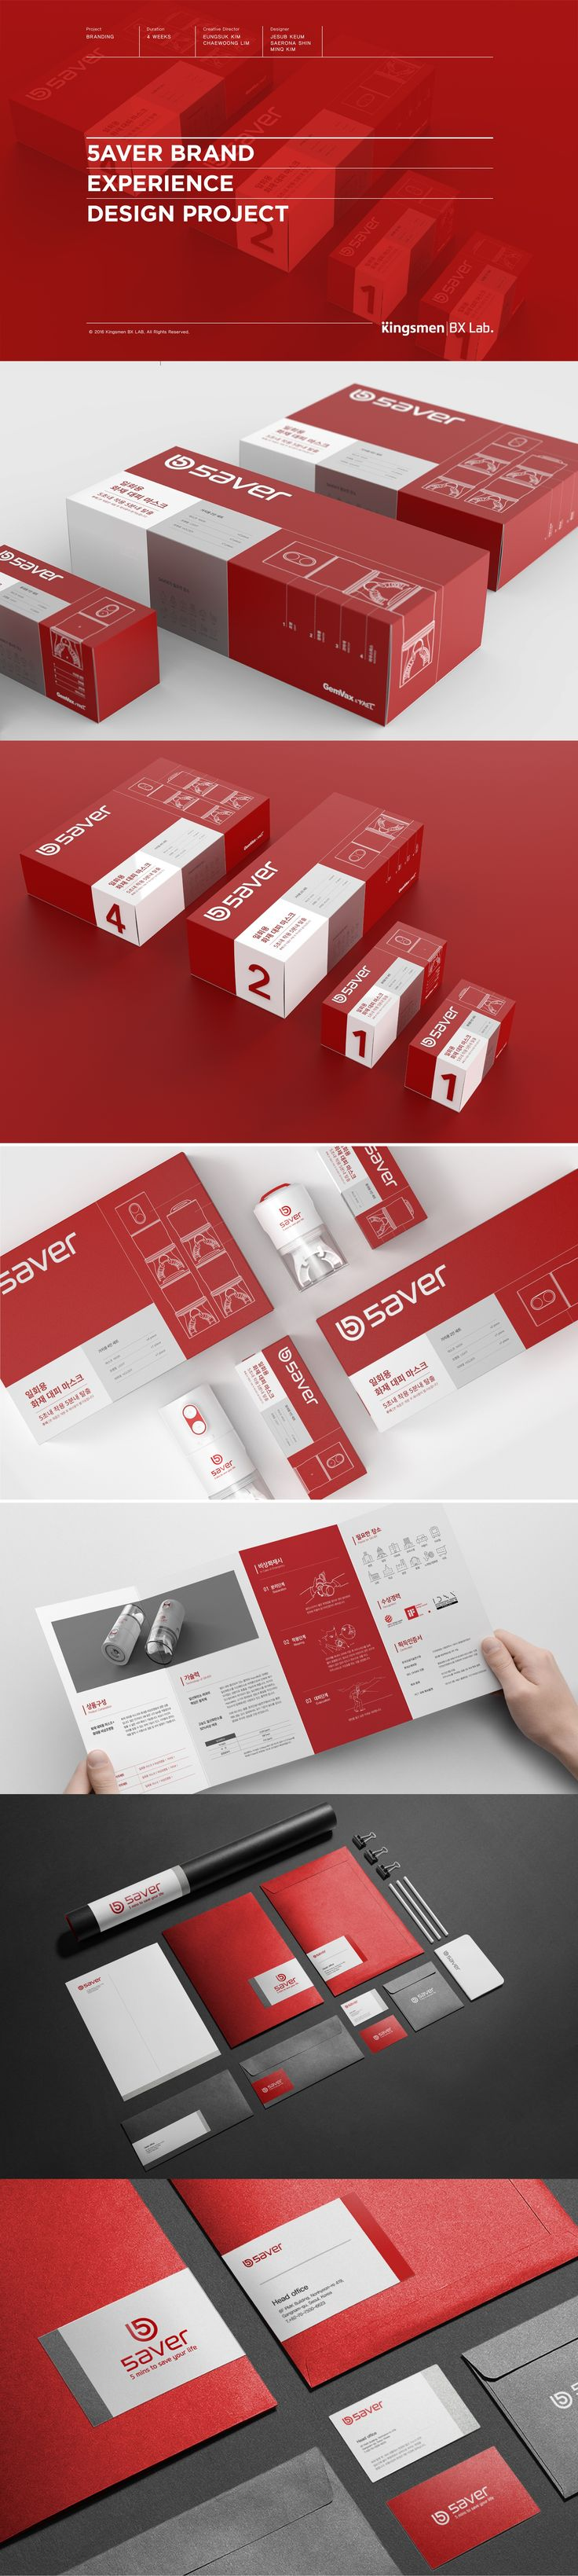 5AVER BRAND EXPERIENCE DESIGN PROJECT